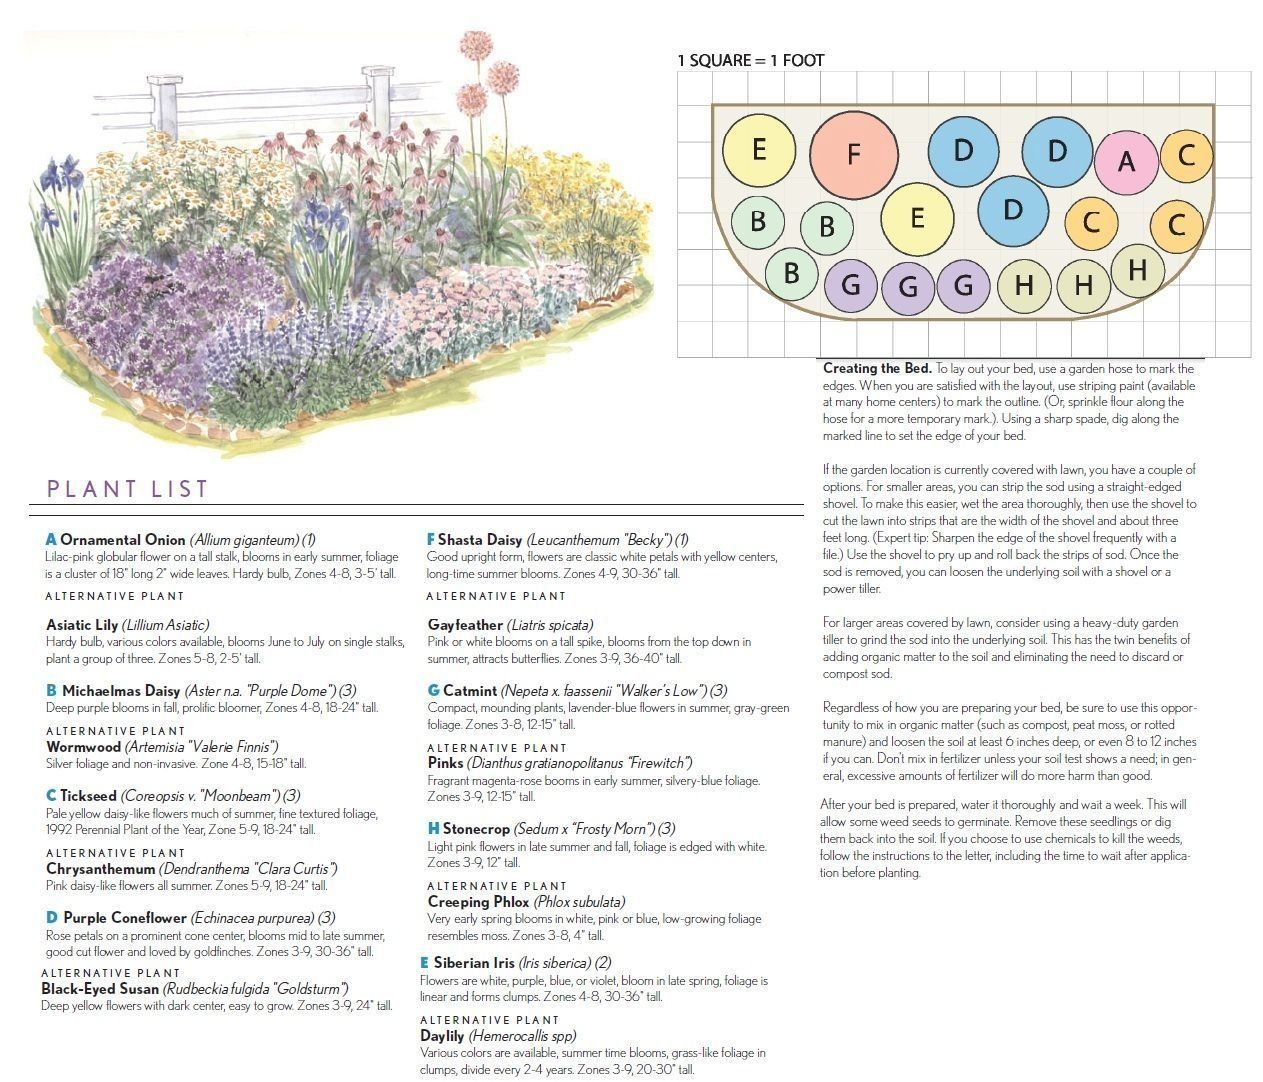 BHG.com beginning full sun garden plan with pictures and ...